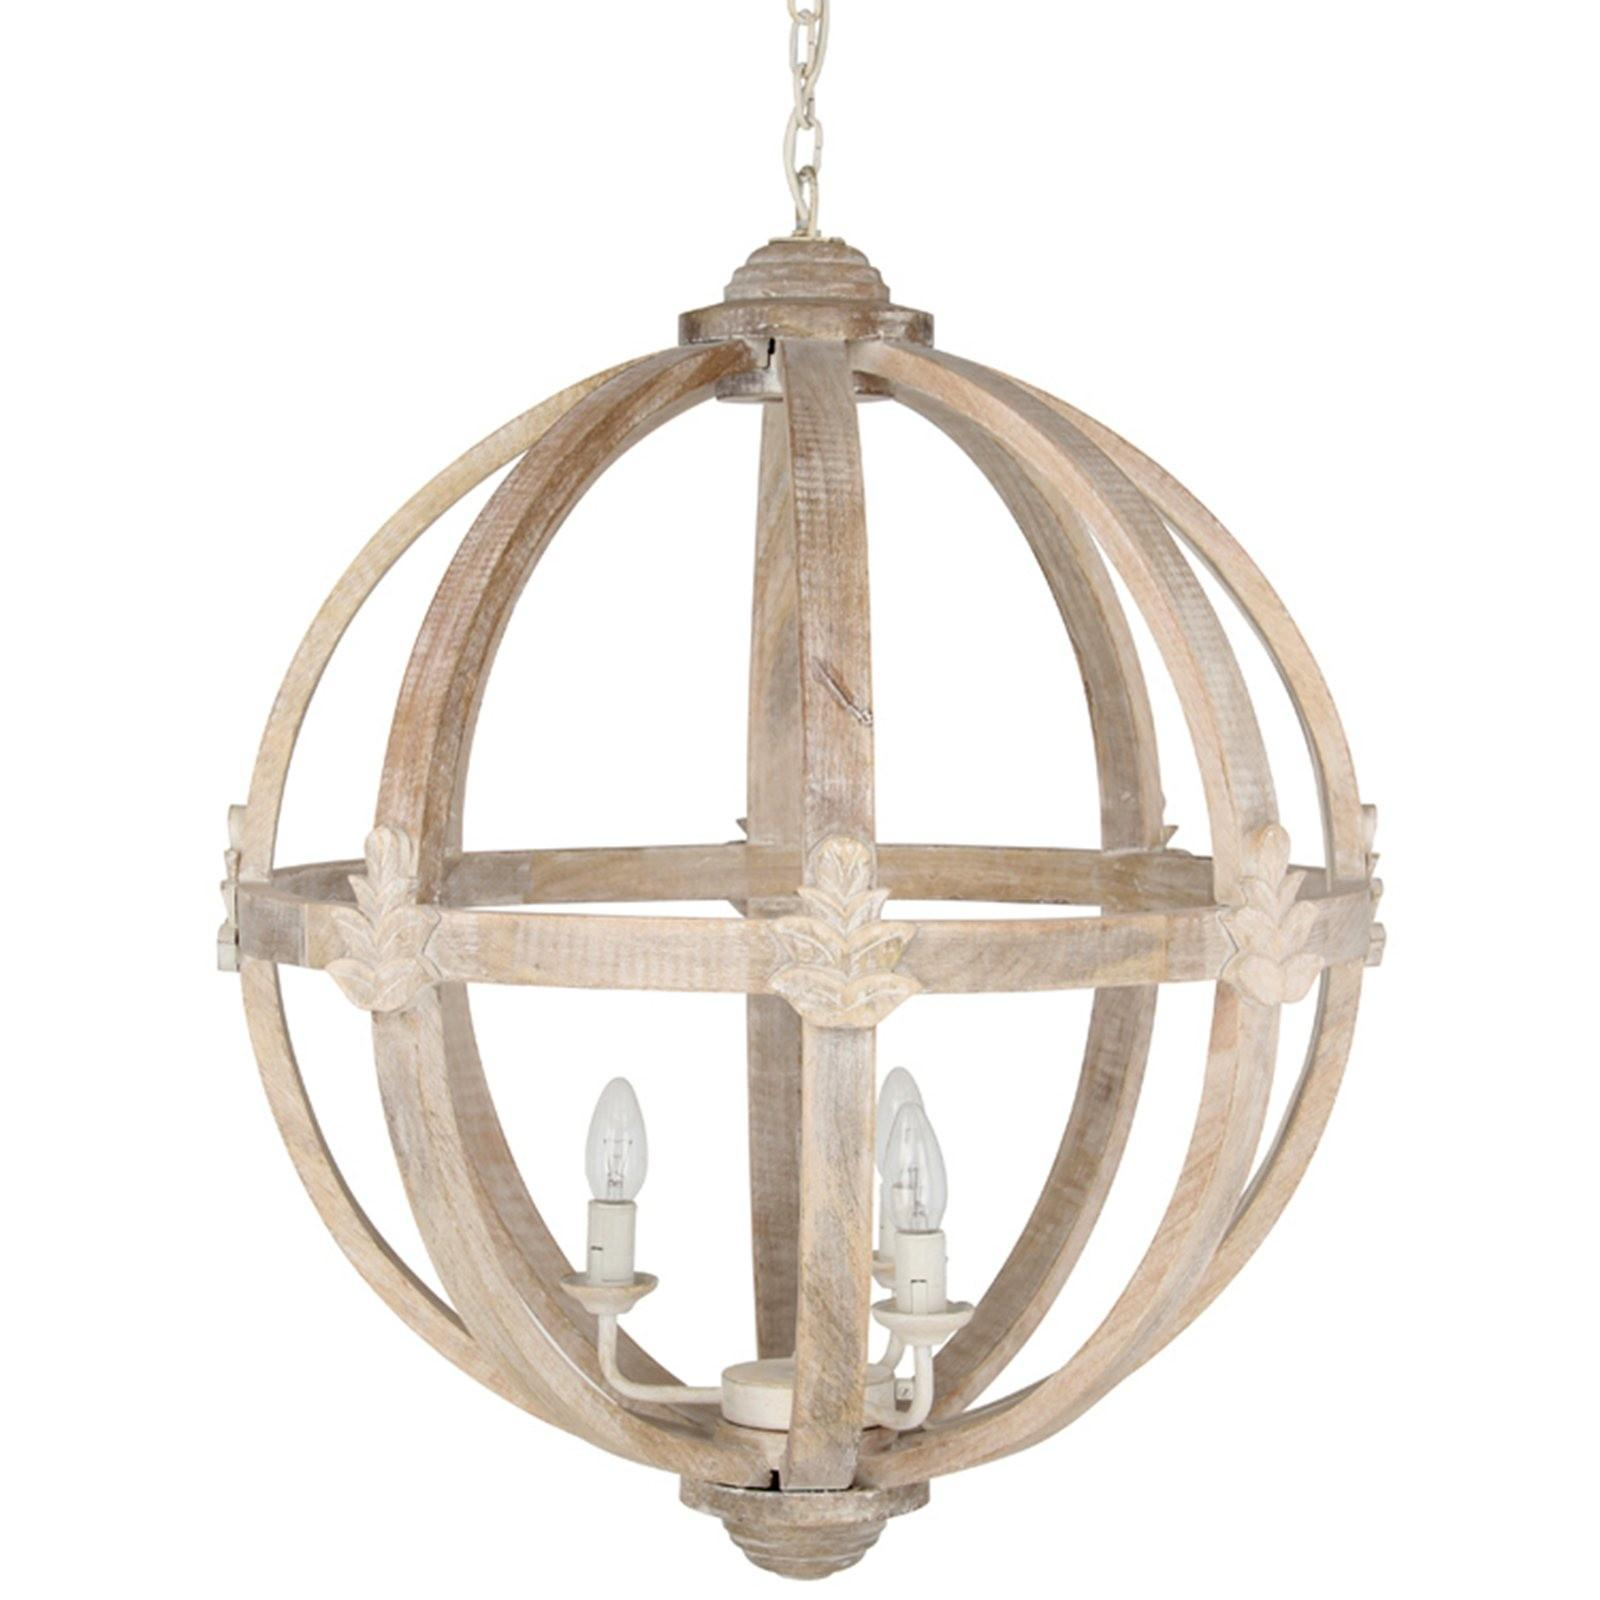 Hicks Dene Round Wood Pendant Light